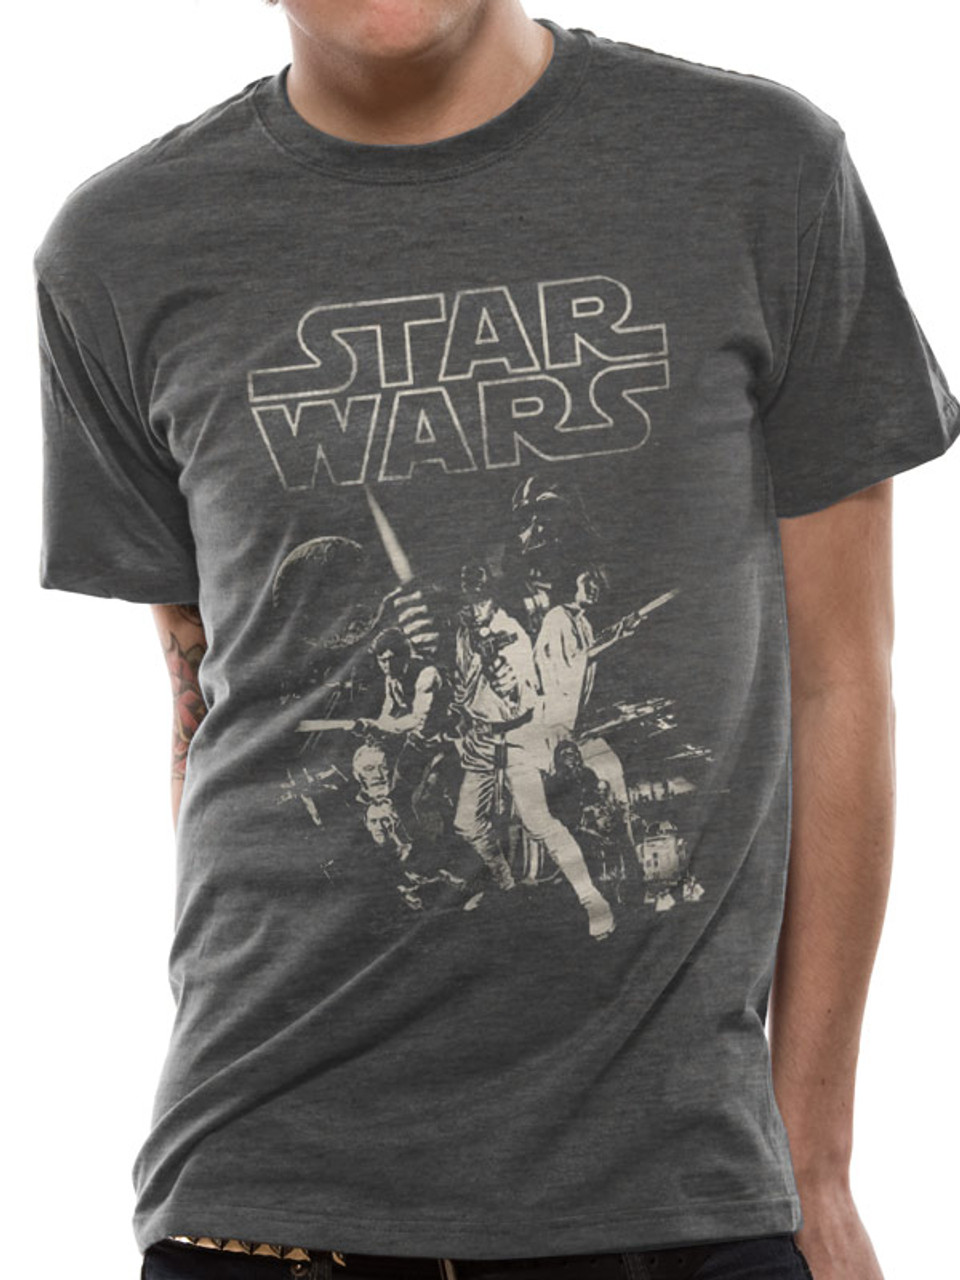 4bb18bbe Star Wars A New Hope Classic Poster Artwork Official Unisex T-Shirt. Buy  Star Wars T-shirts Now at Starstills.com